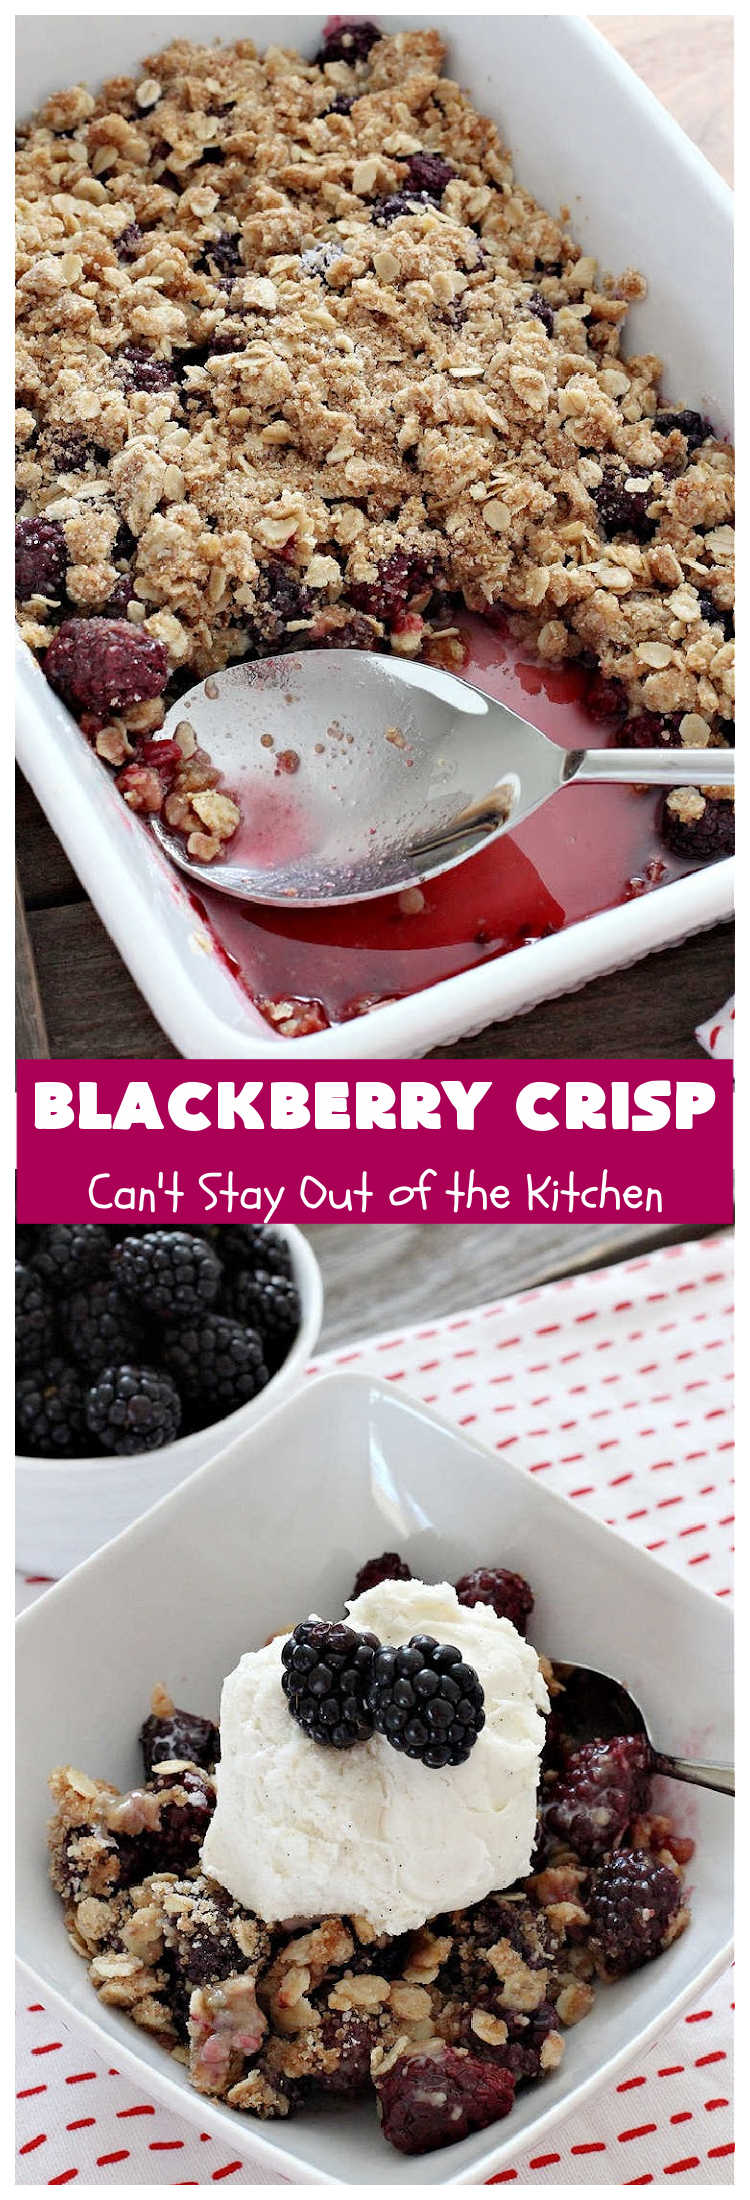 Blackberry Crisp | Can't Stay Out of the Kitchen | This #dessert is absolutely mouthwatering. It's  terrific as a #summer #dessert, but #blackberries can be purchased year round now so it's great for any kind of #holiday, company or #potluck #dessert. #HolidayDessert #BlackberryDessert #BlackberryCrisp